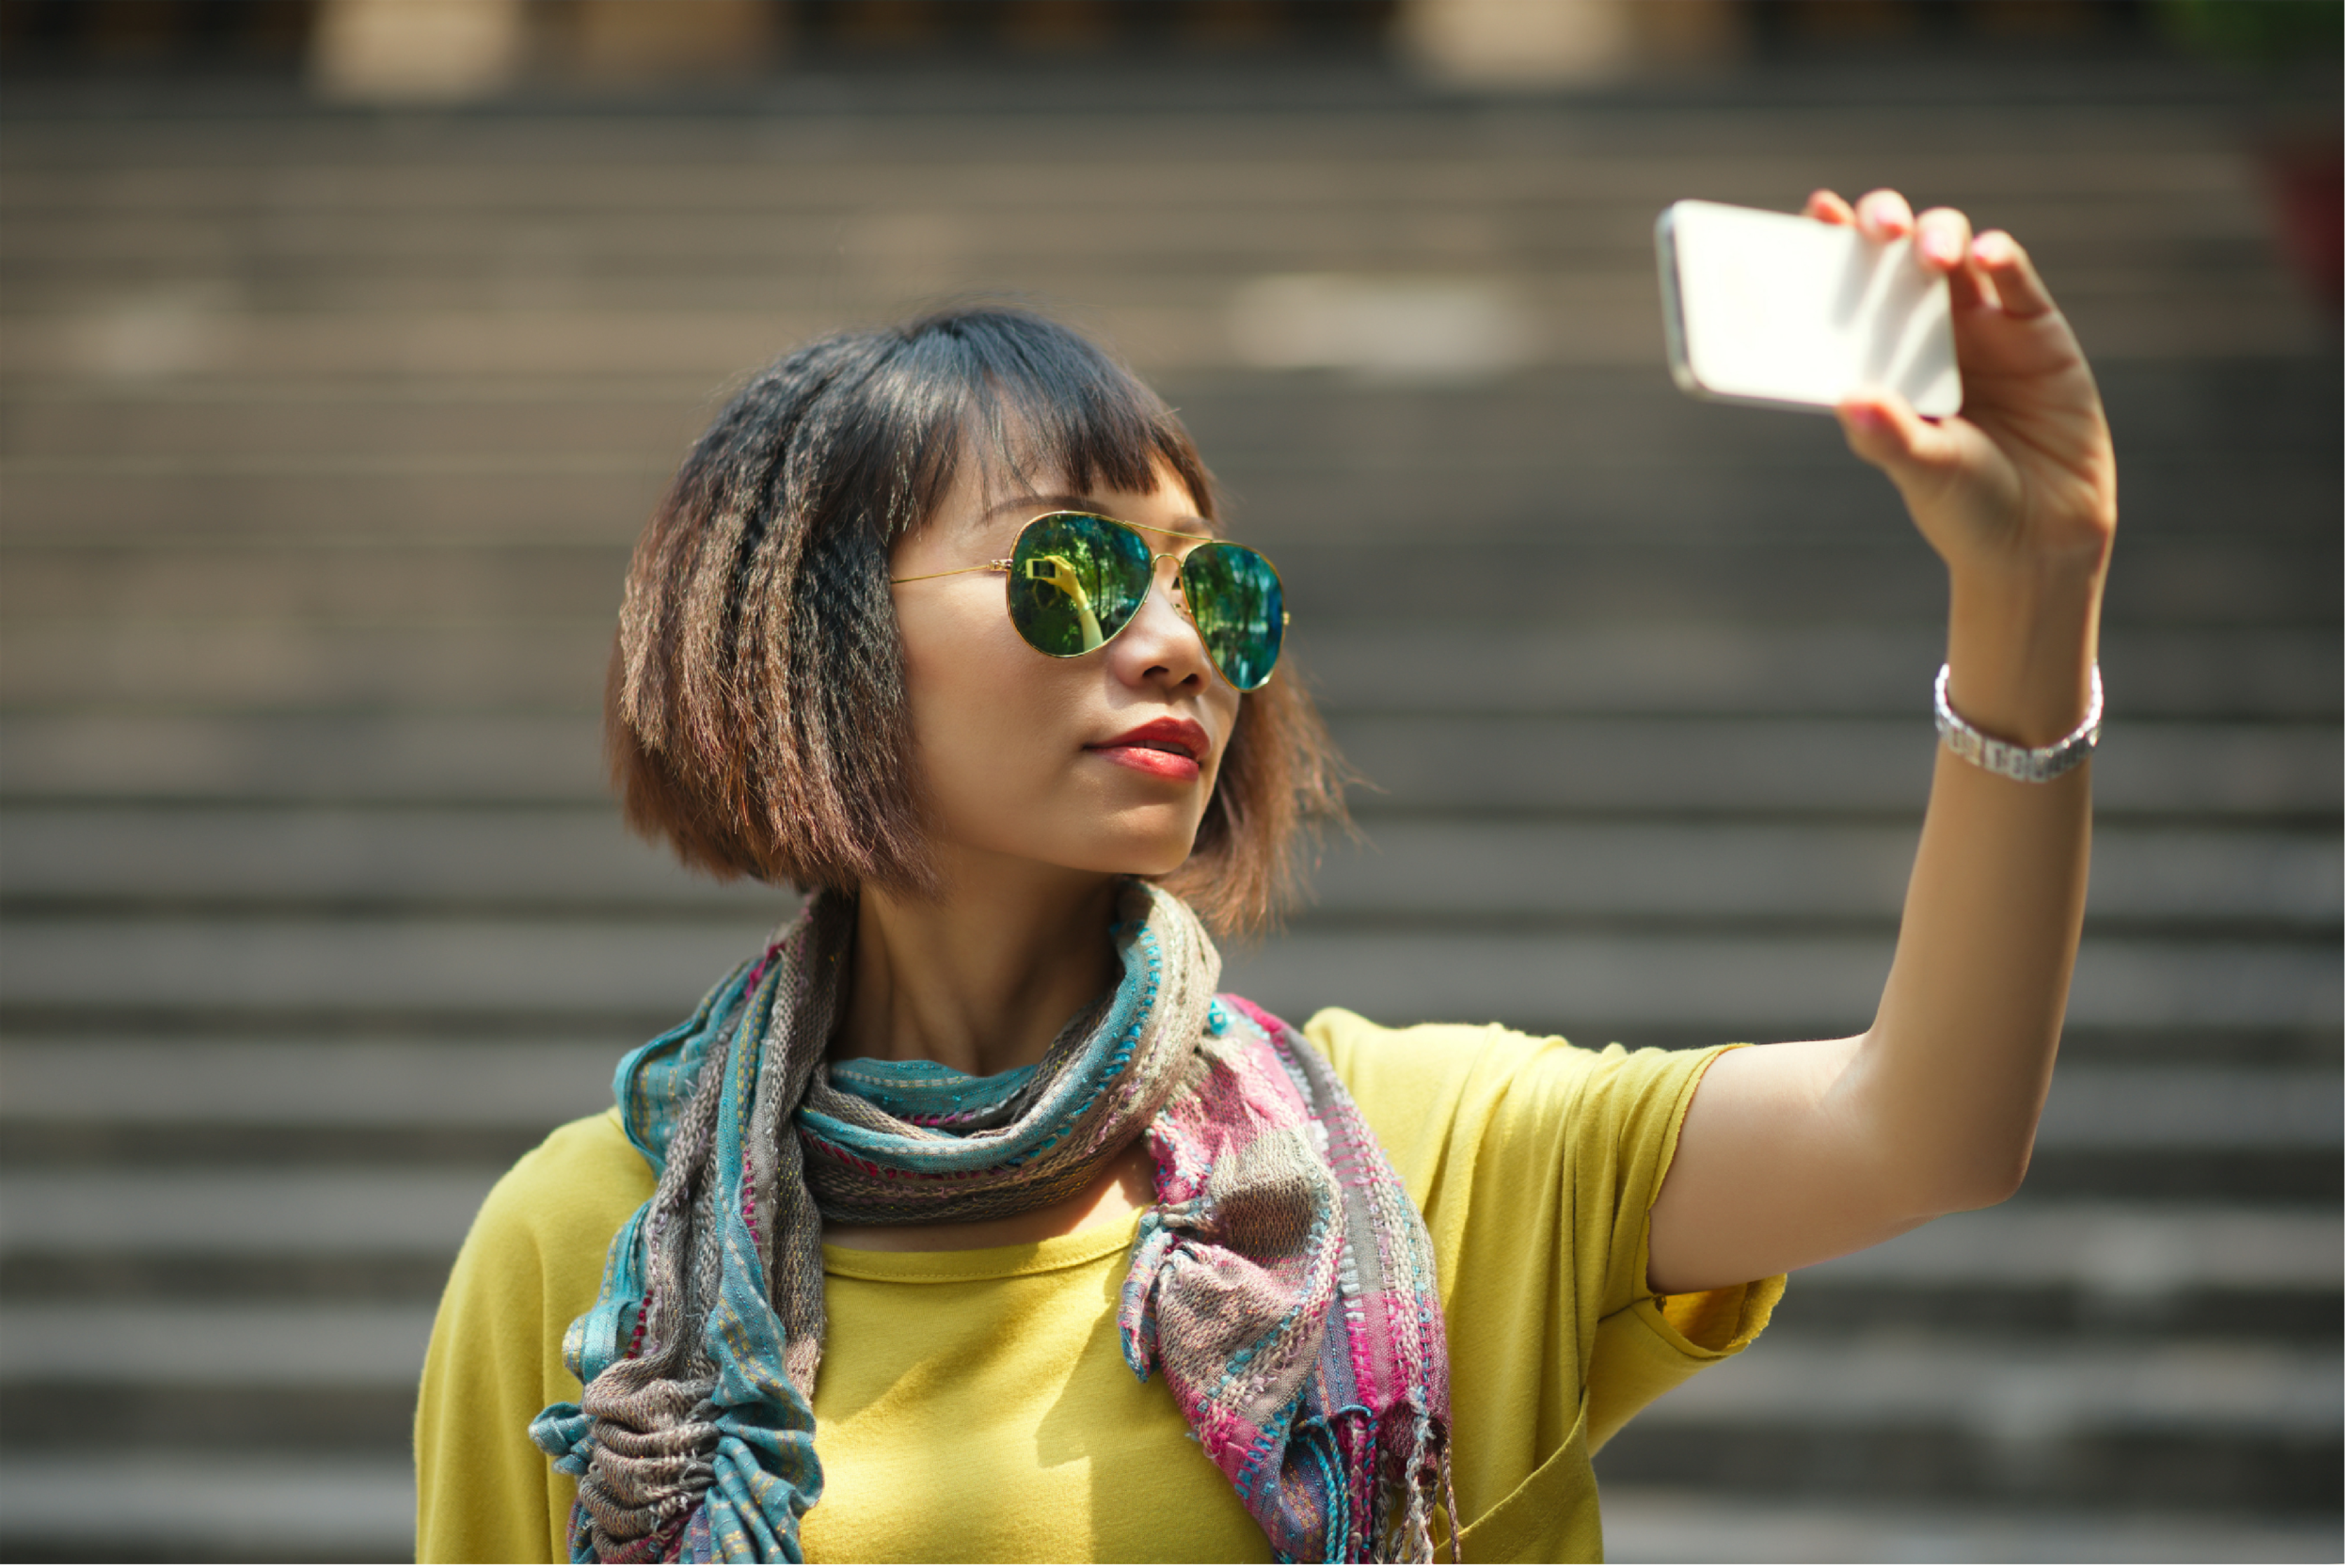 The Reputation of Self as a Brand on Social Media